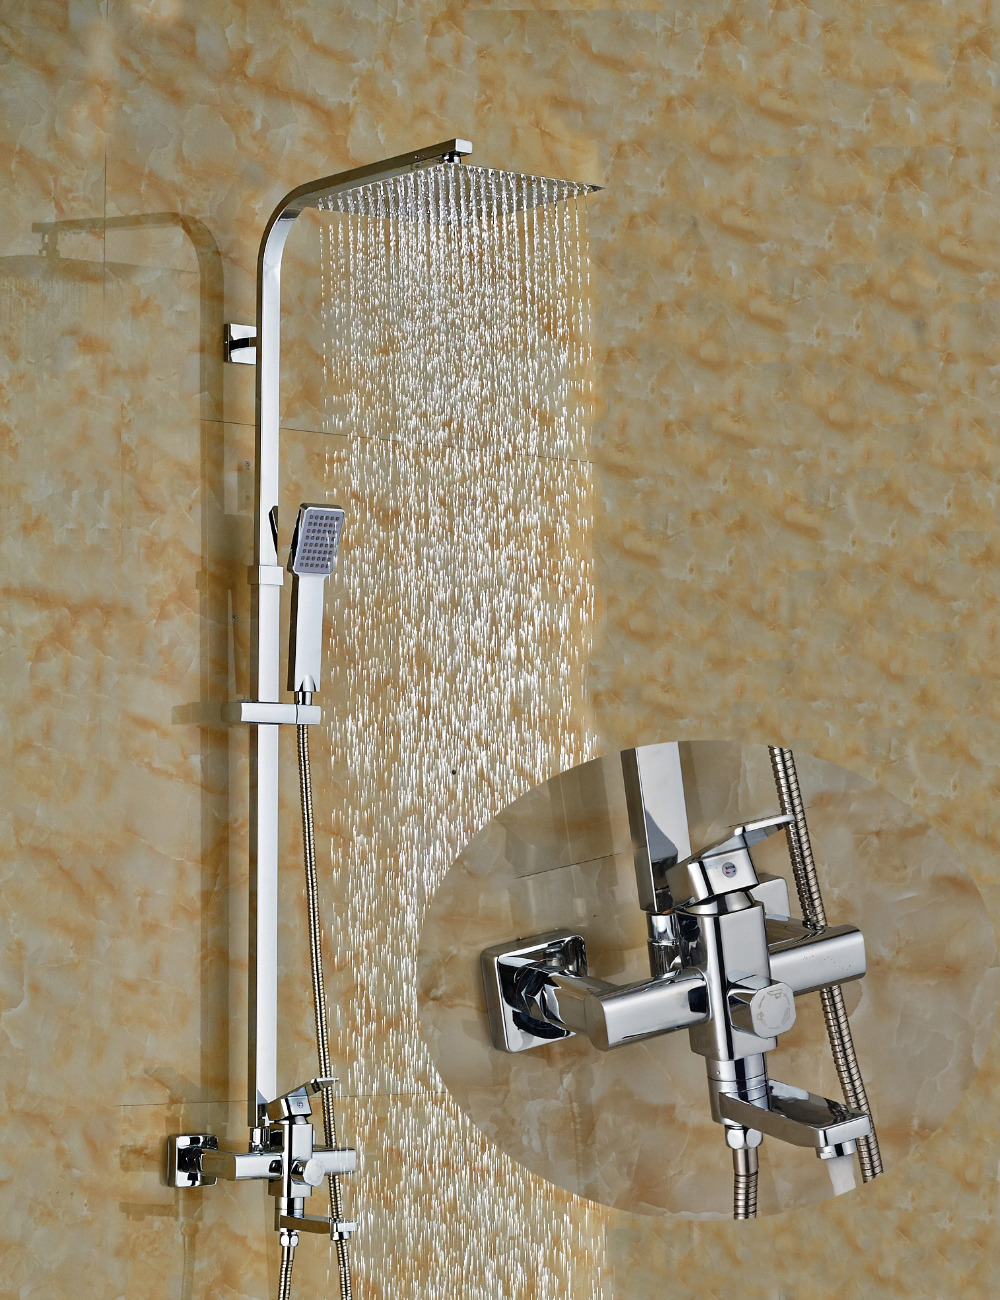 Wholesale And Retail Wall Mounted Bathroom Chrome Finish Rain Shower Head Faucet Tub Spout Hand Unit